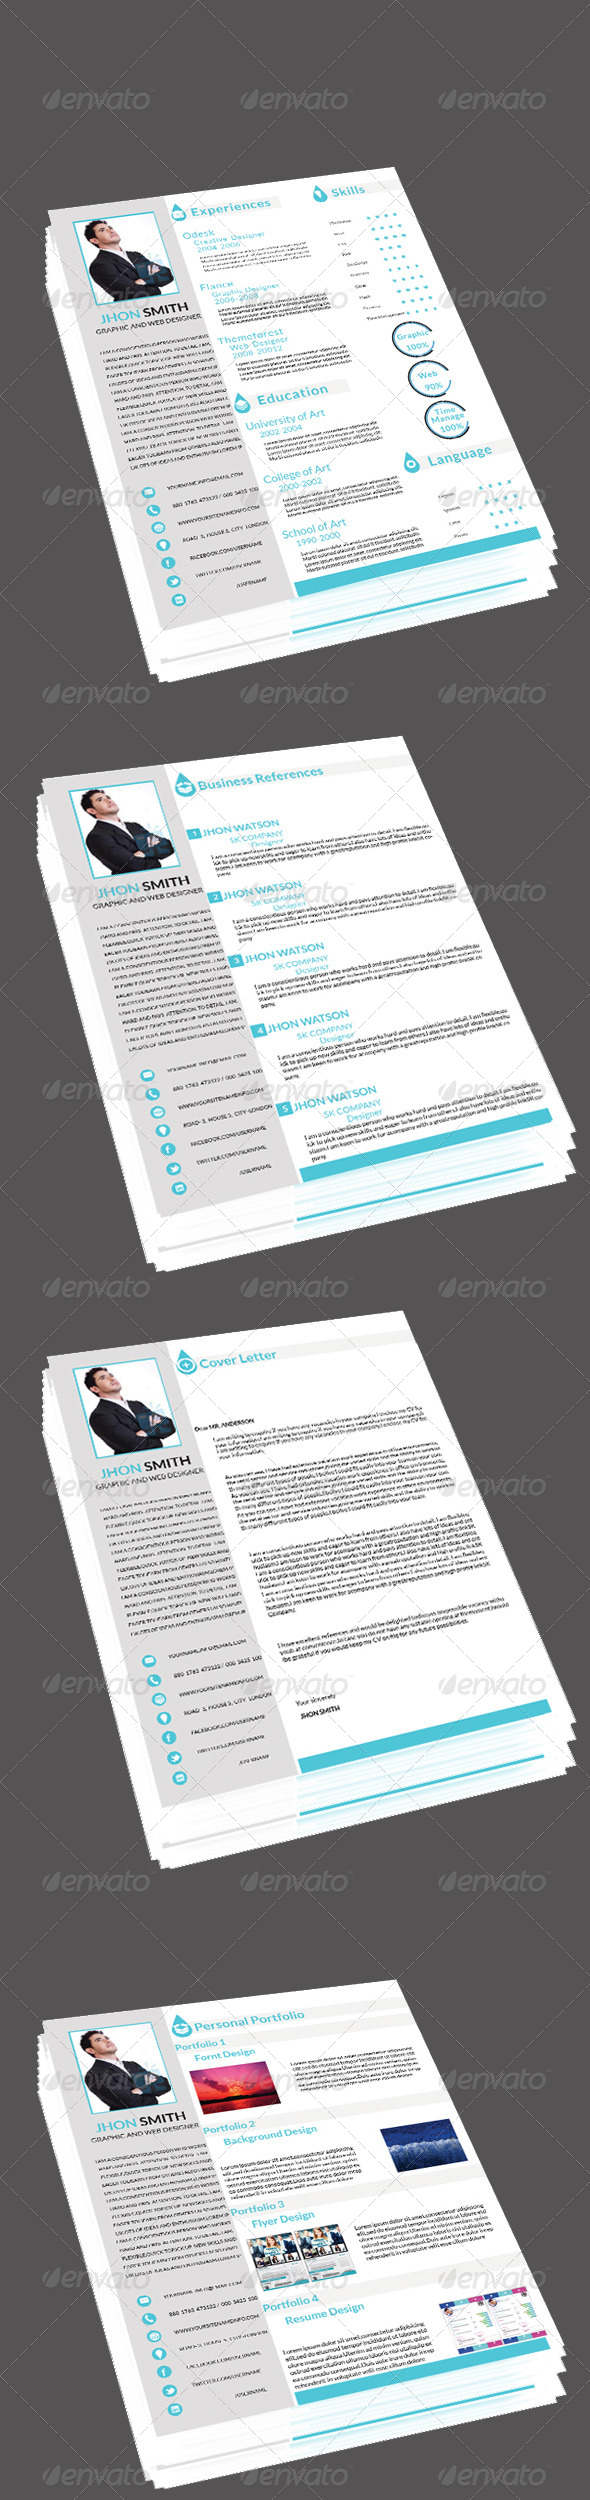 GraphicRiver Clean & Modern Resume CV 6806861